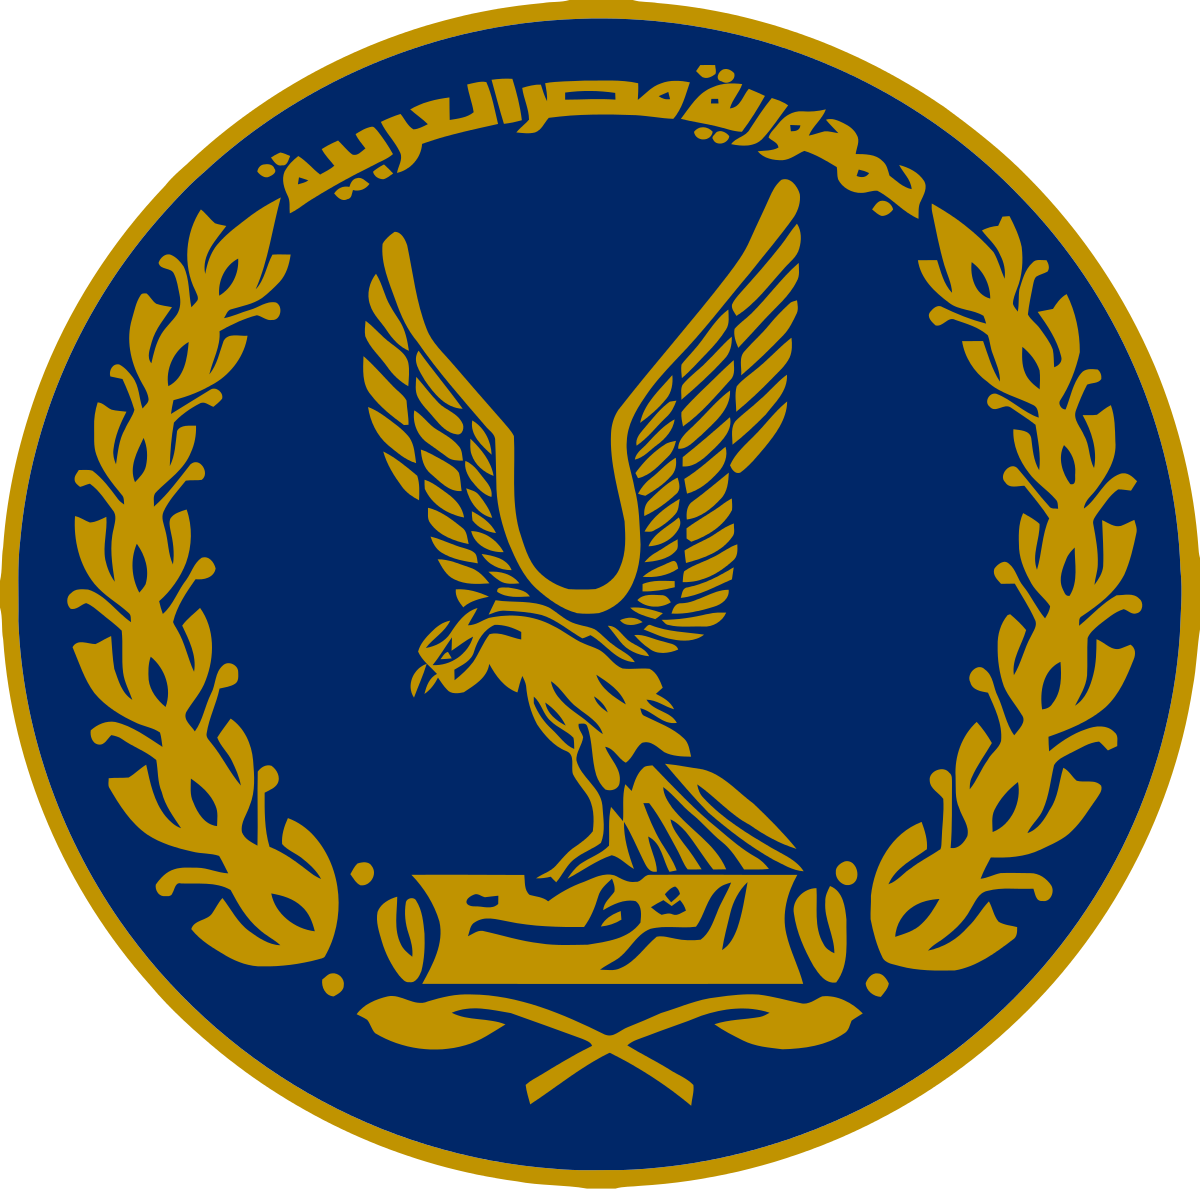 Hat svg cop. Egyptian national police wikipedia